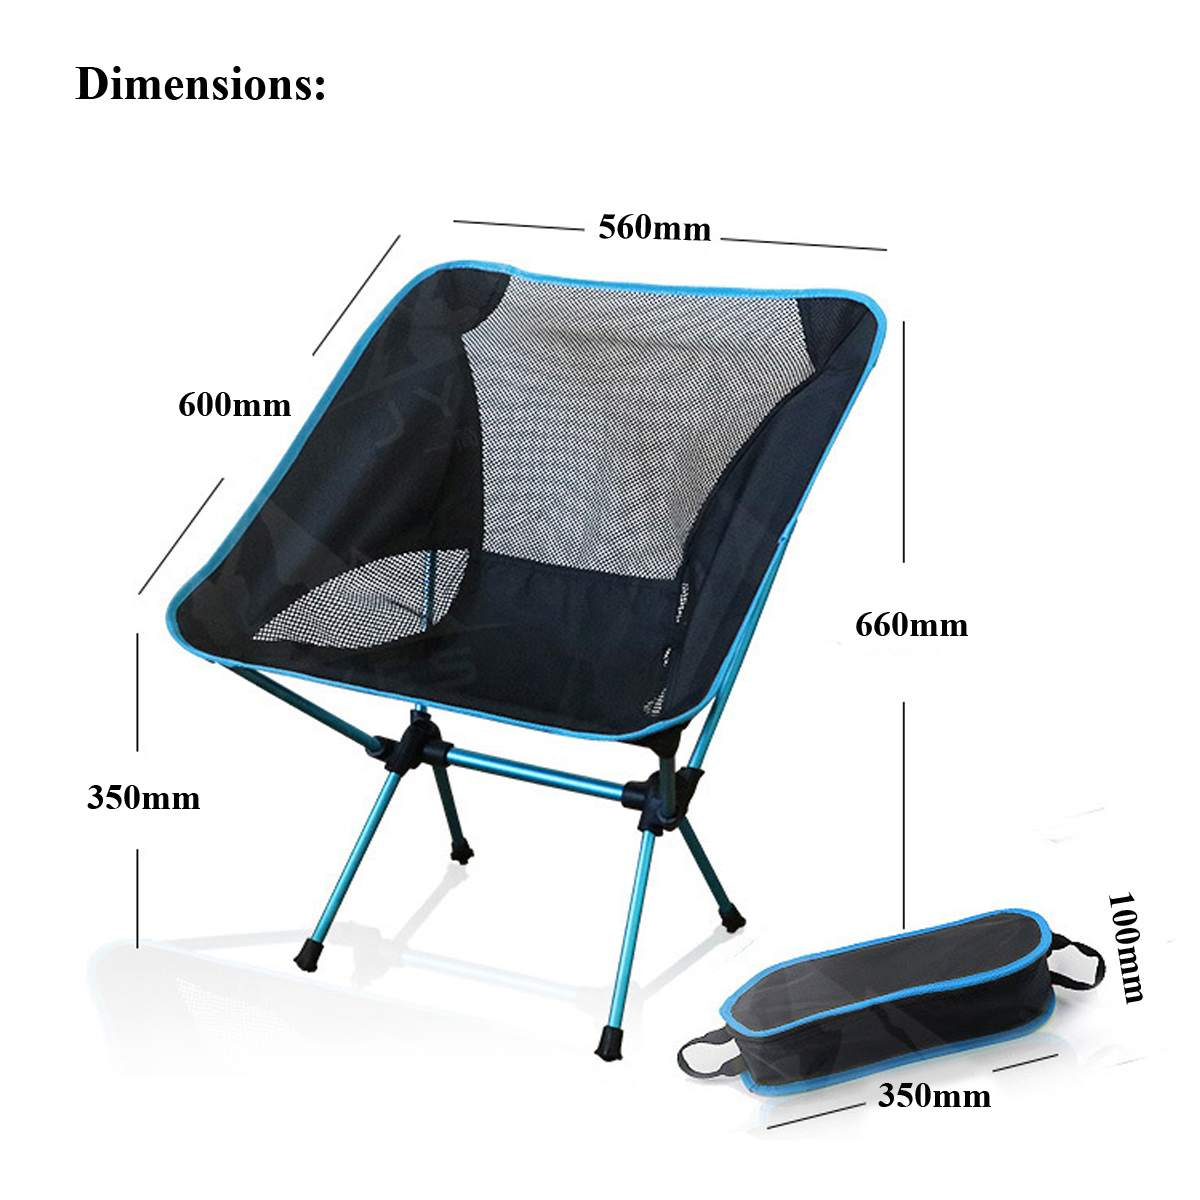 Foldable Office Chair Portable Folding Camping Stool Foldable Fishing Chair Seat With Backpack For Fishing Picnic Bbq Cycling Hiking